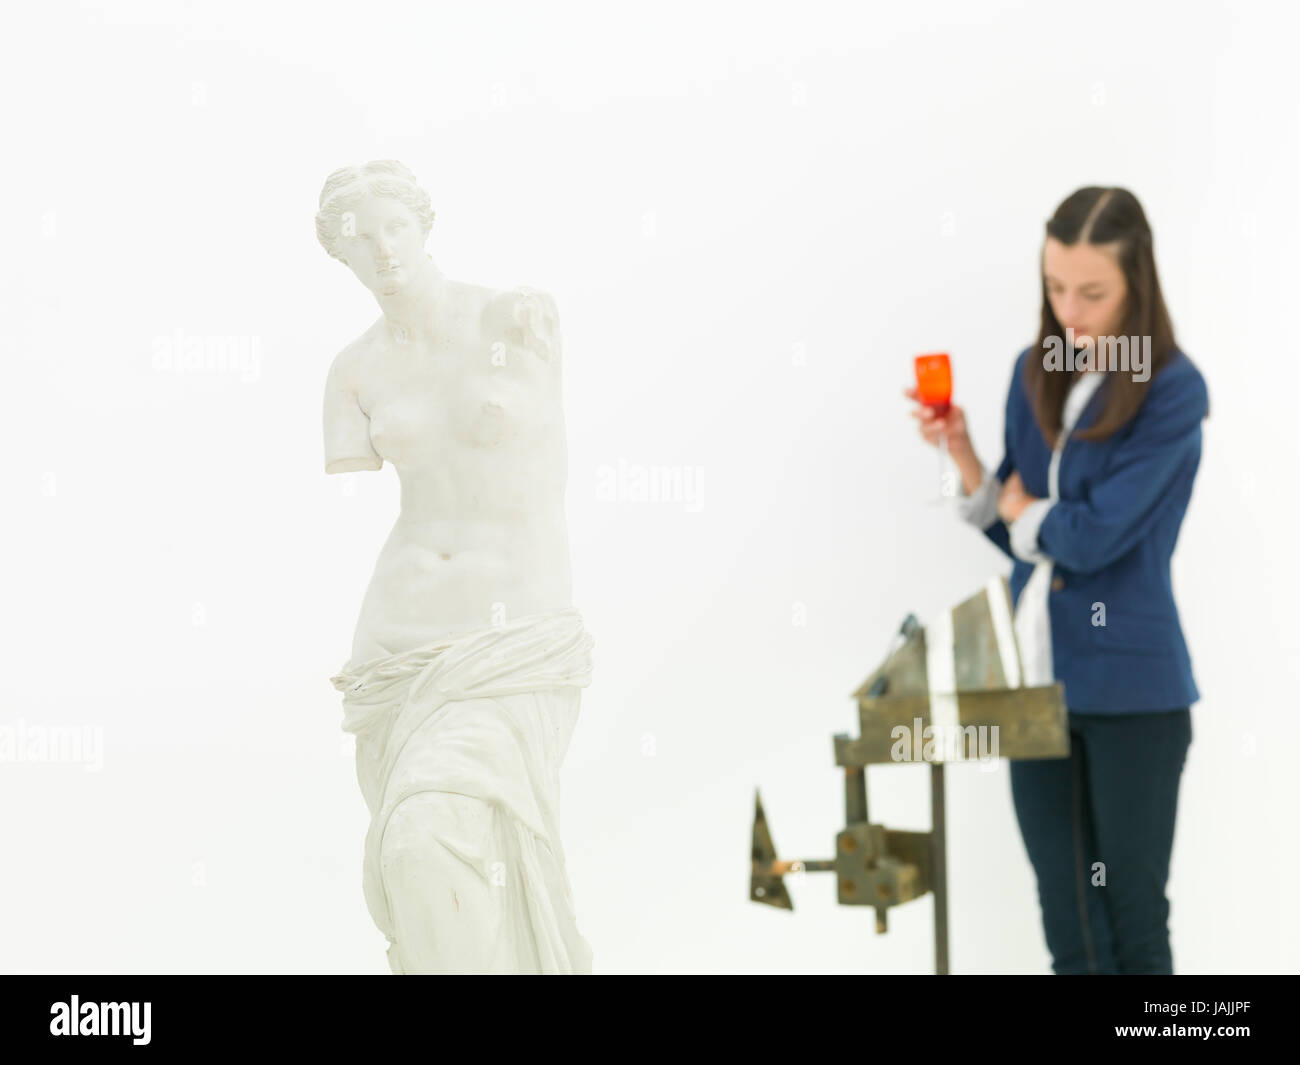 woman scrutinizing sculpture behind a replica of Venus de Milo statue in a museum - Stock Image